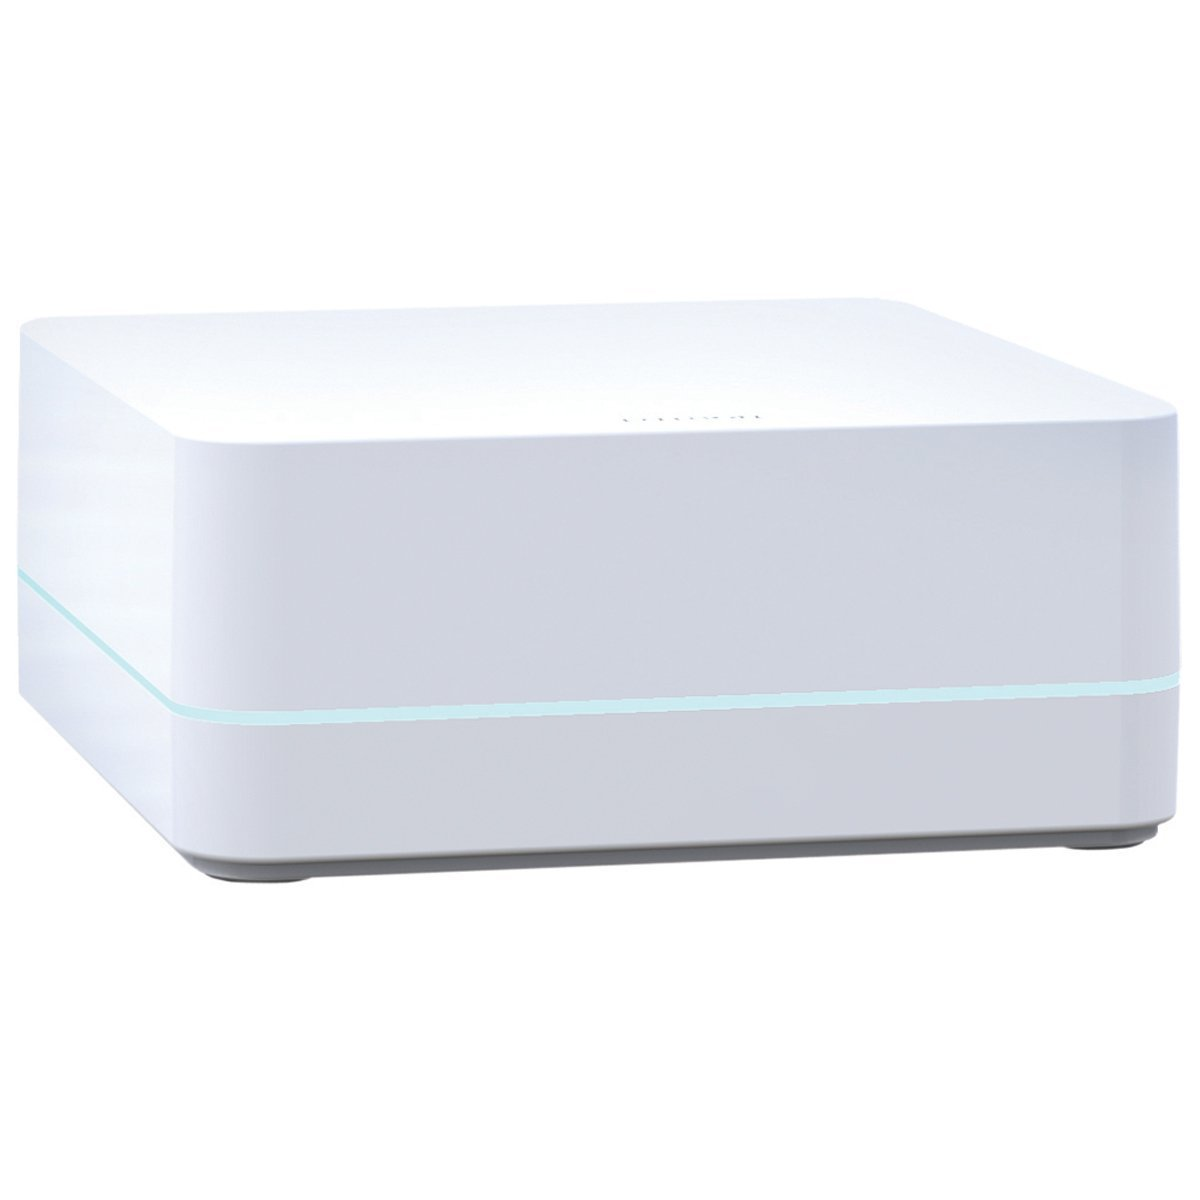 Lutron Caseta Wireless Smart Bridge, L-BDG2-WH, Works with Alexa, Apple HomeKit, and the Google Assistant by Lutron (Image #2)